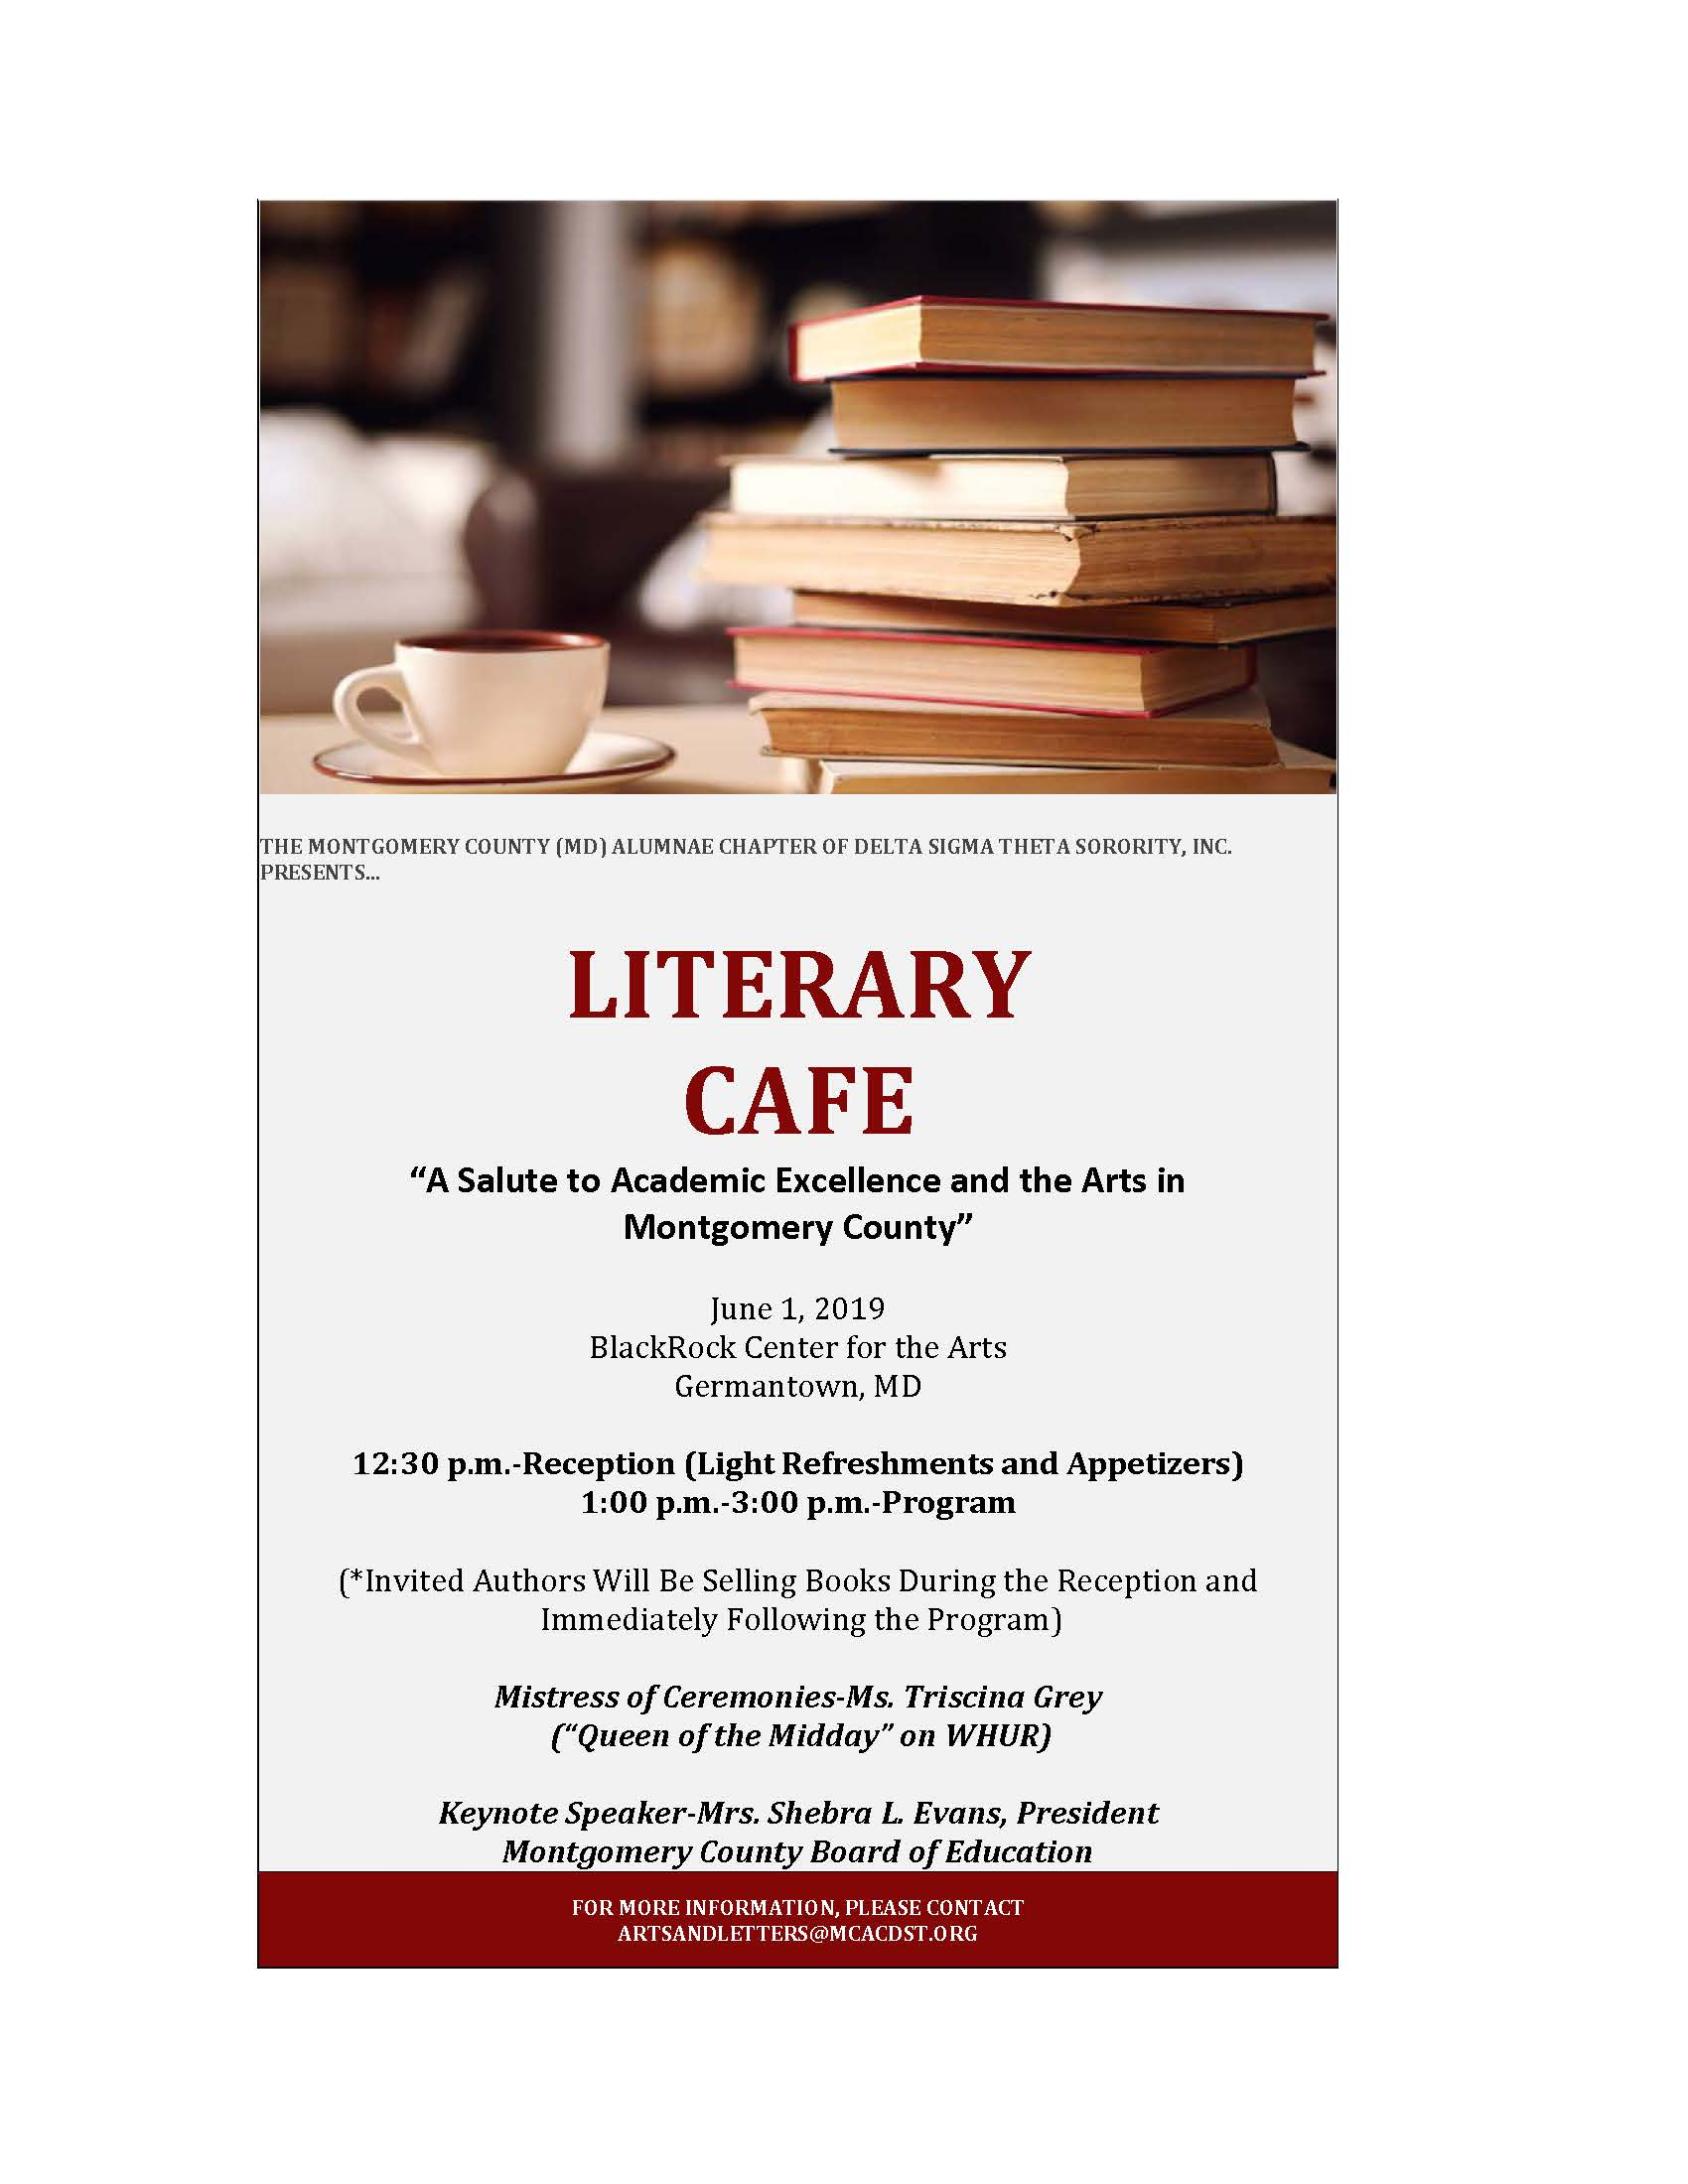 Literary Cafe – Montgomery County (MD) Alumnae Chapter